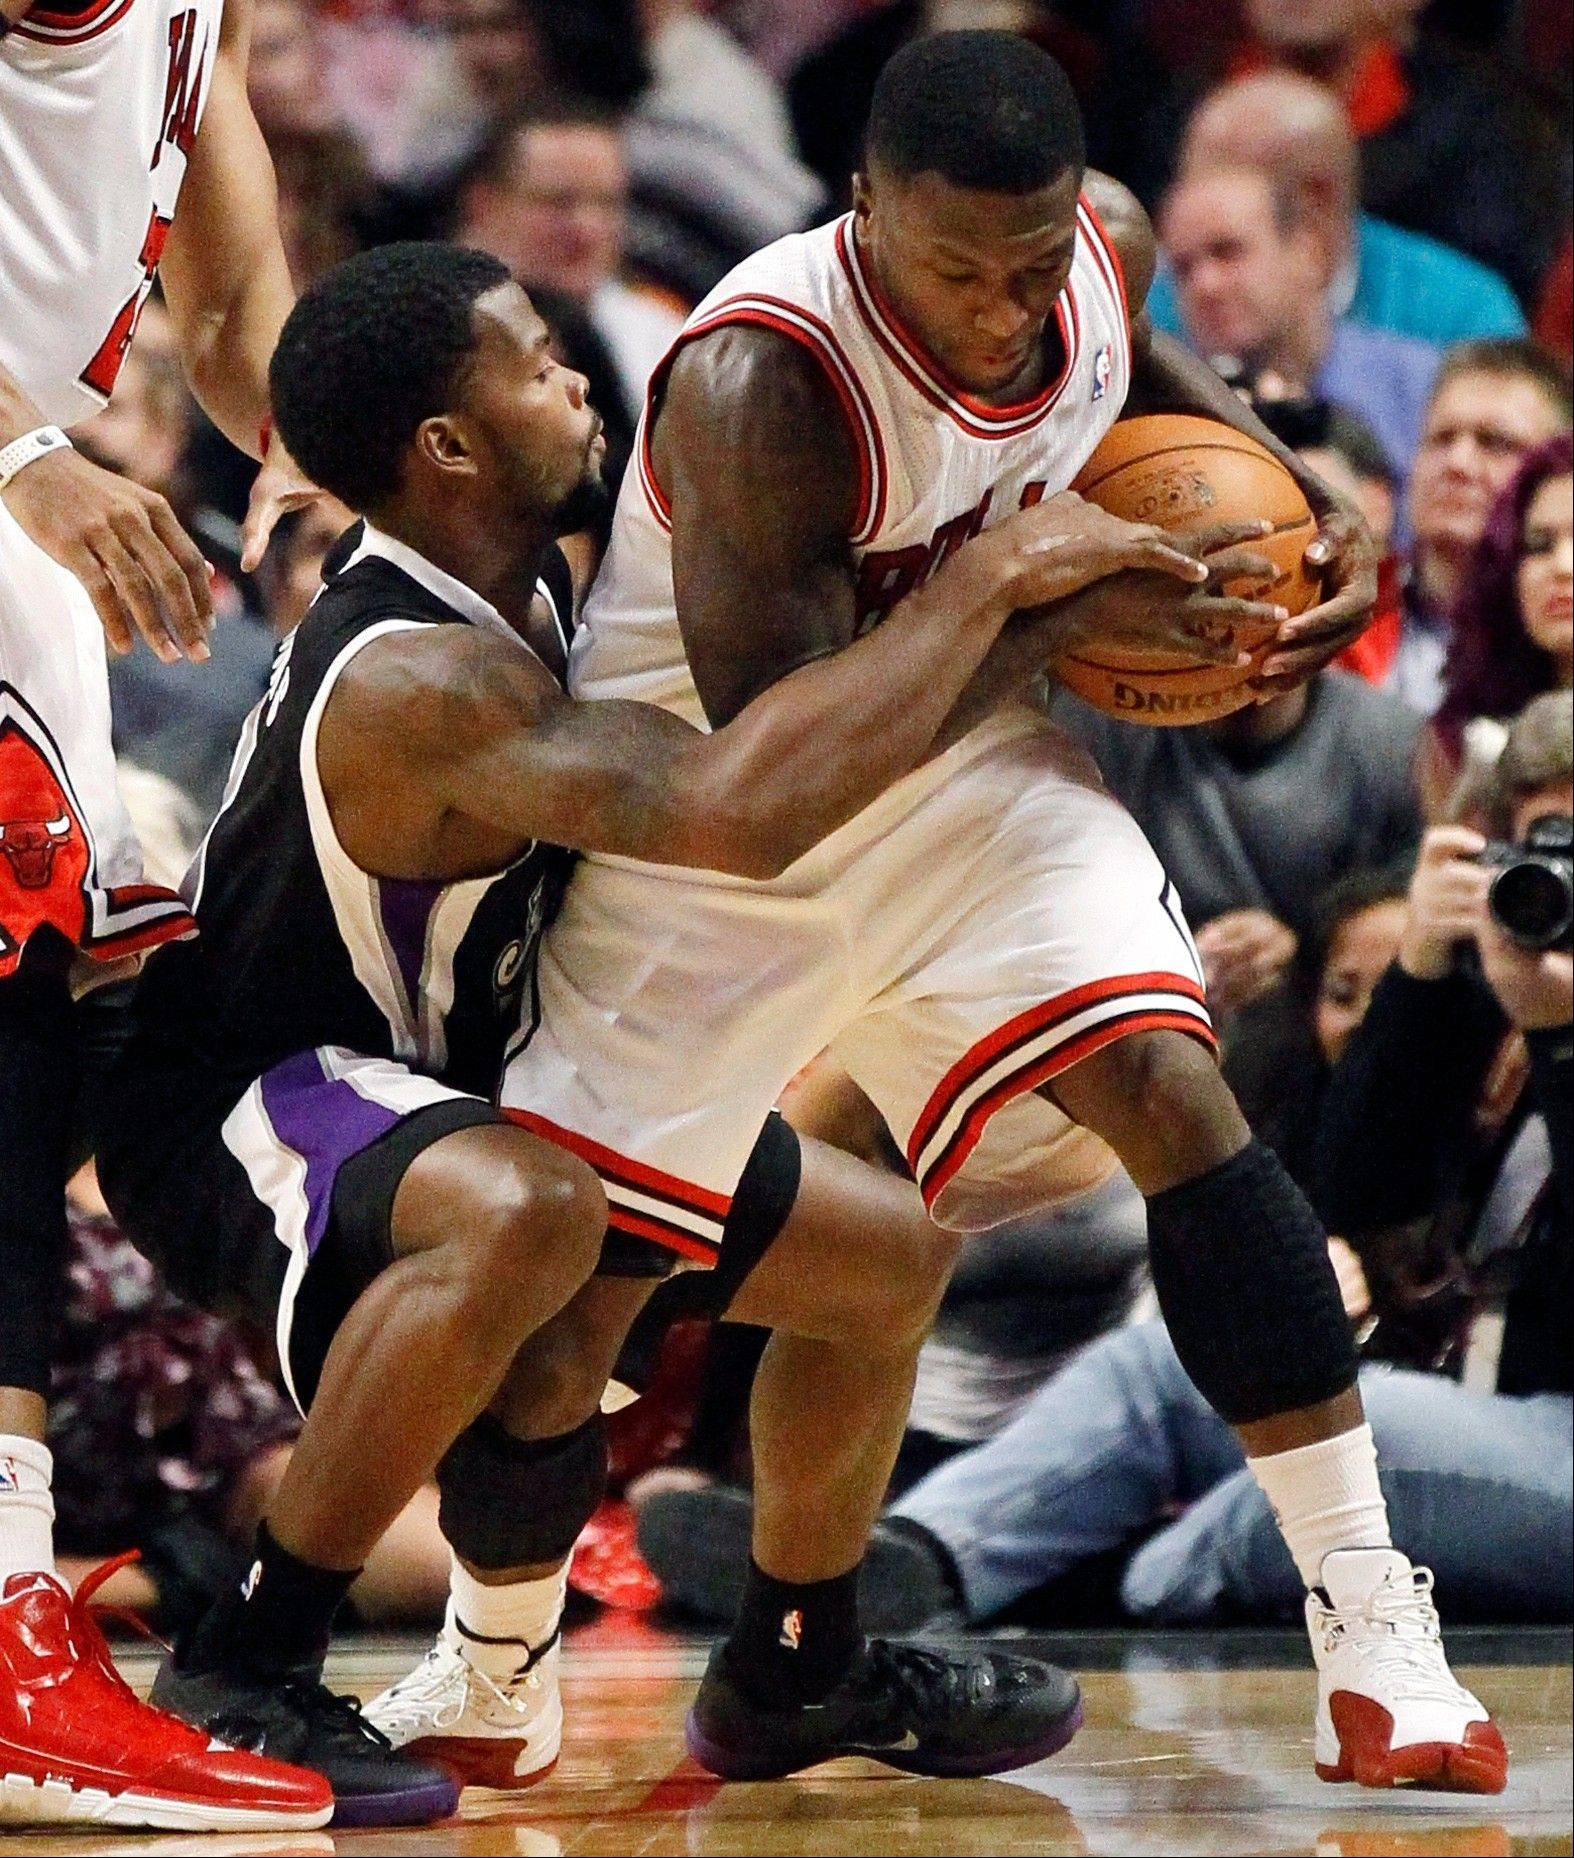 The Bulls struggled to put away the Sacramento Kings in Wednesday's season opener, but they still won the game and there's nothing ugly about a win, says Mike North.